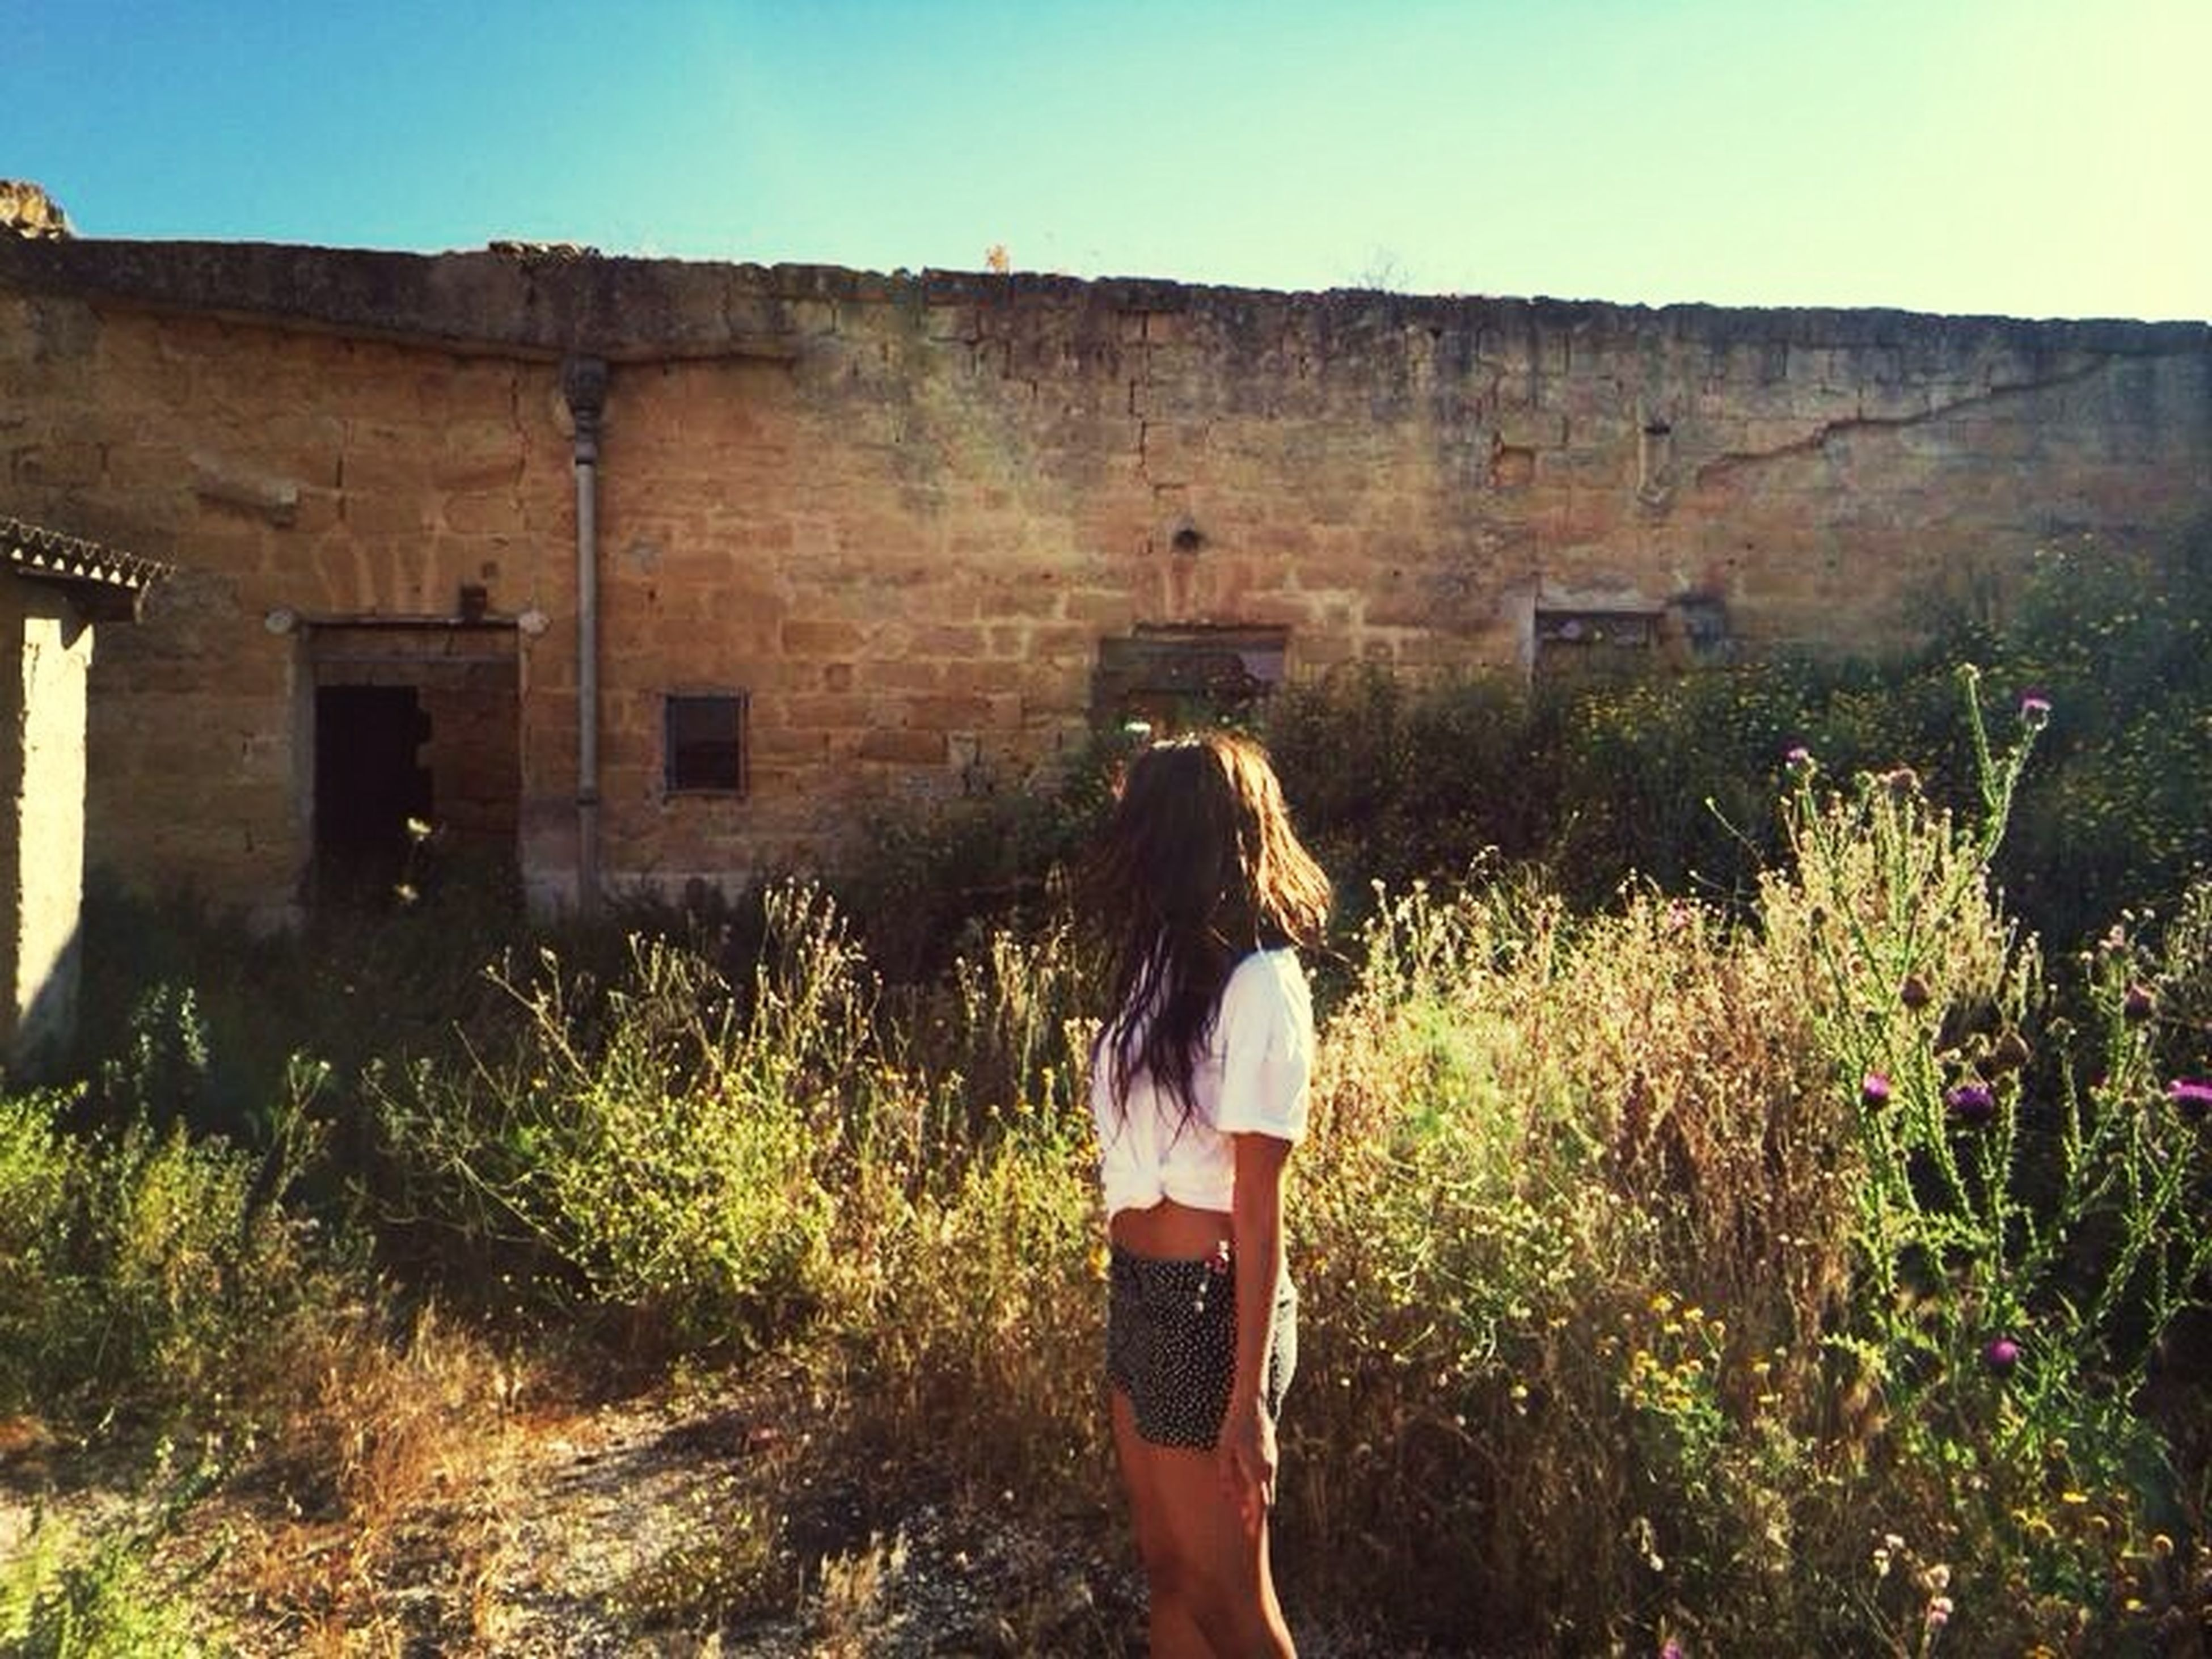 lifestyles, leisure activity, casual clothing, standing, full length, young adult, rear view, young women, plant, built structure, grass, architecture, clear sky, three quarter length, sunlight, building exterior, person